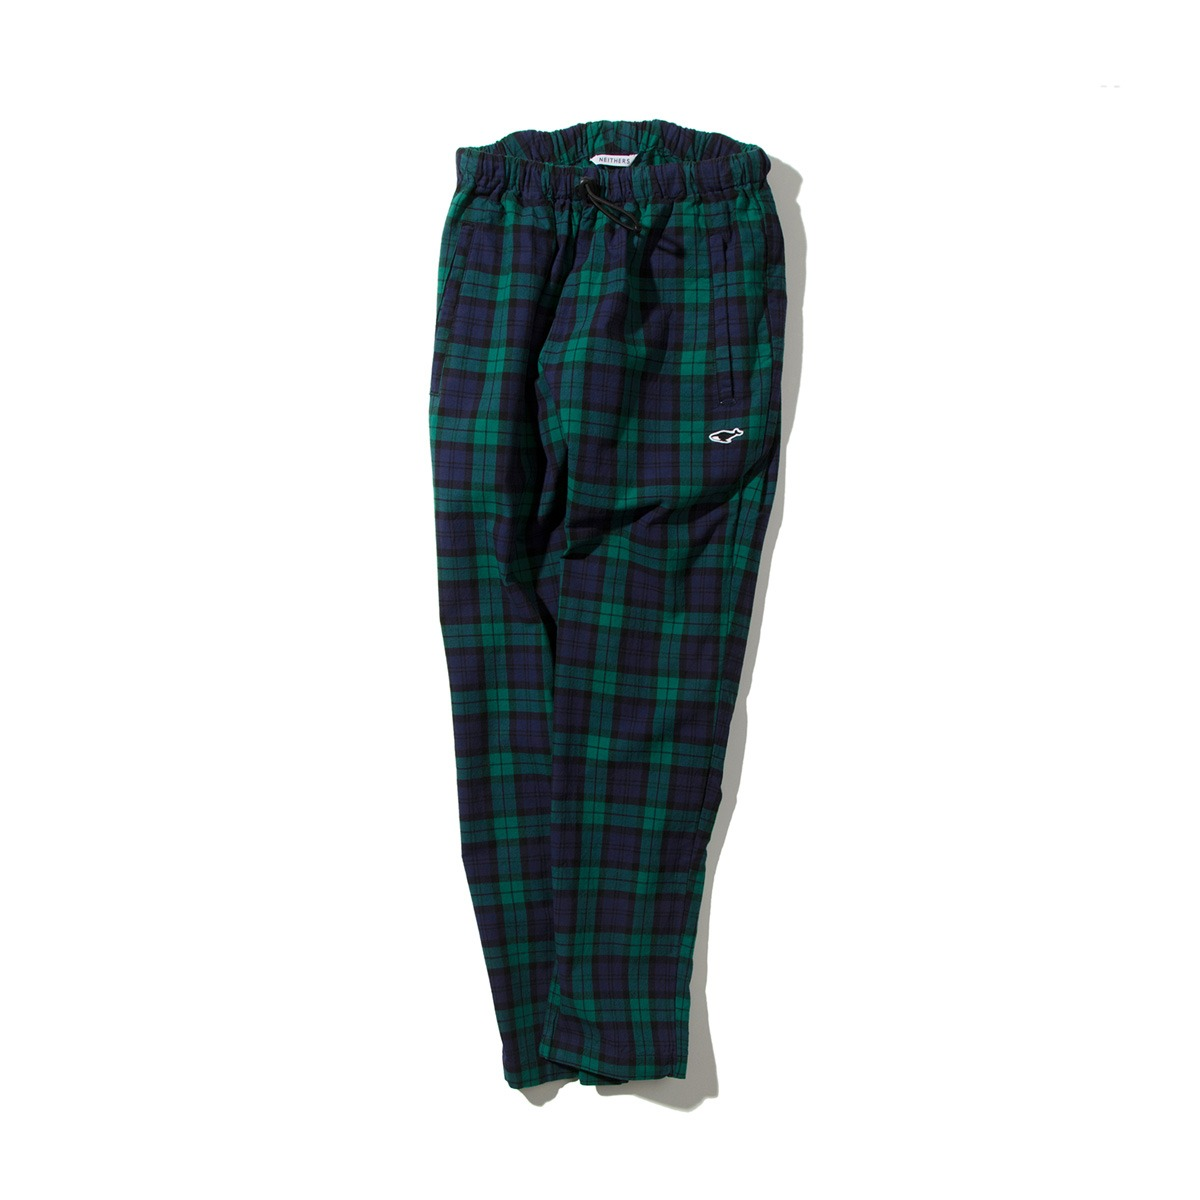 [NEITHERS] 312-3 MEDICAL PANTS 'GR/NV'